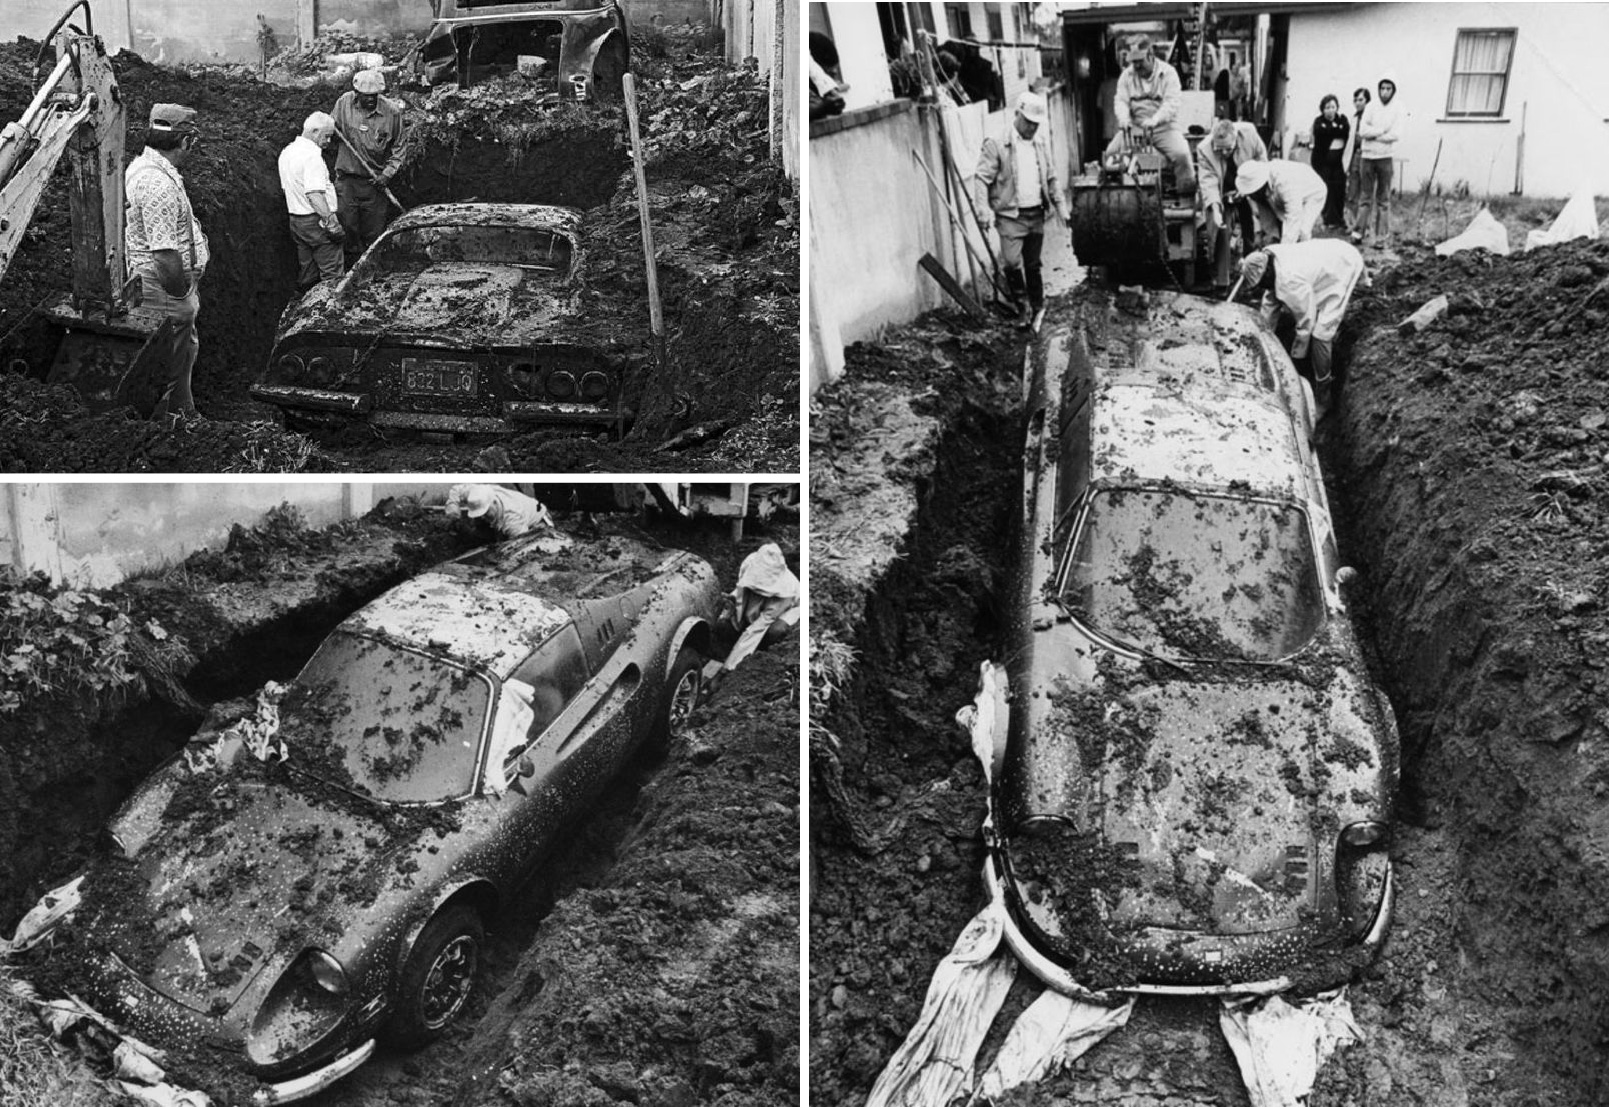 Mystery Of The Buried Ferrari Dino Solved